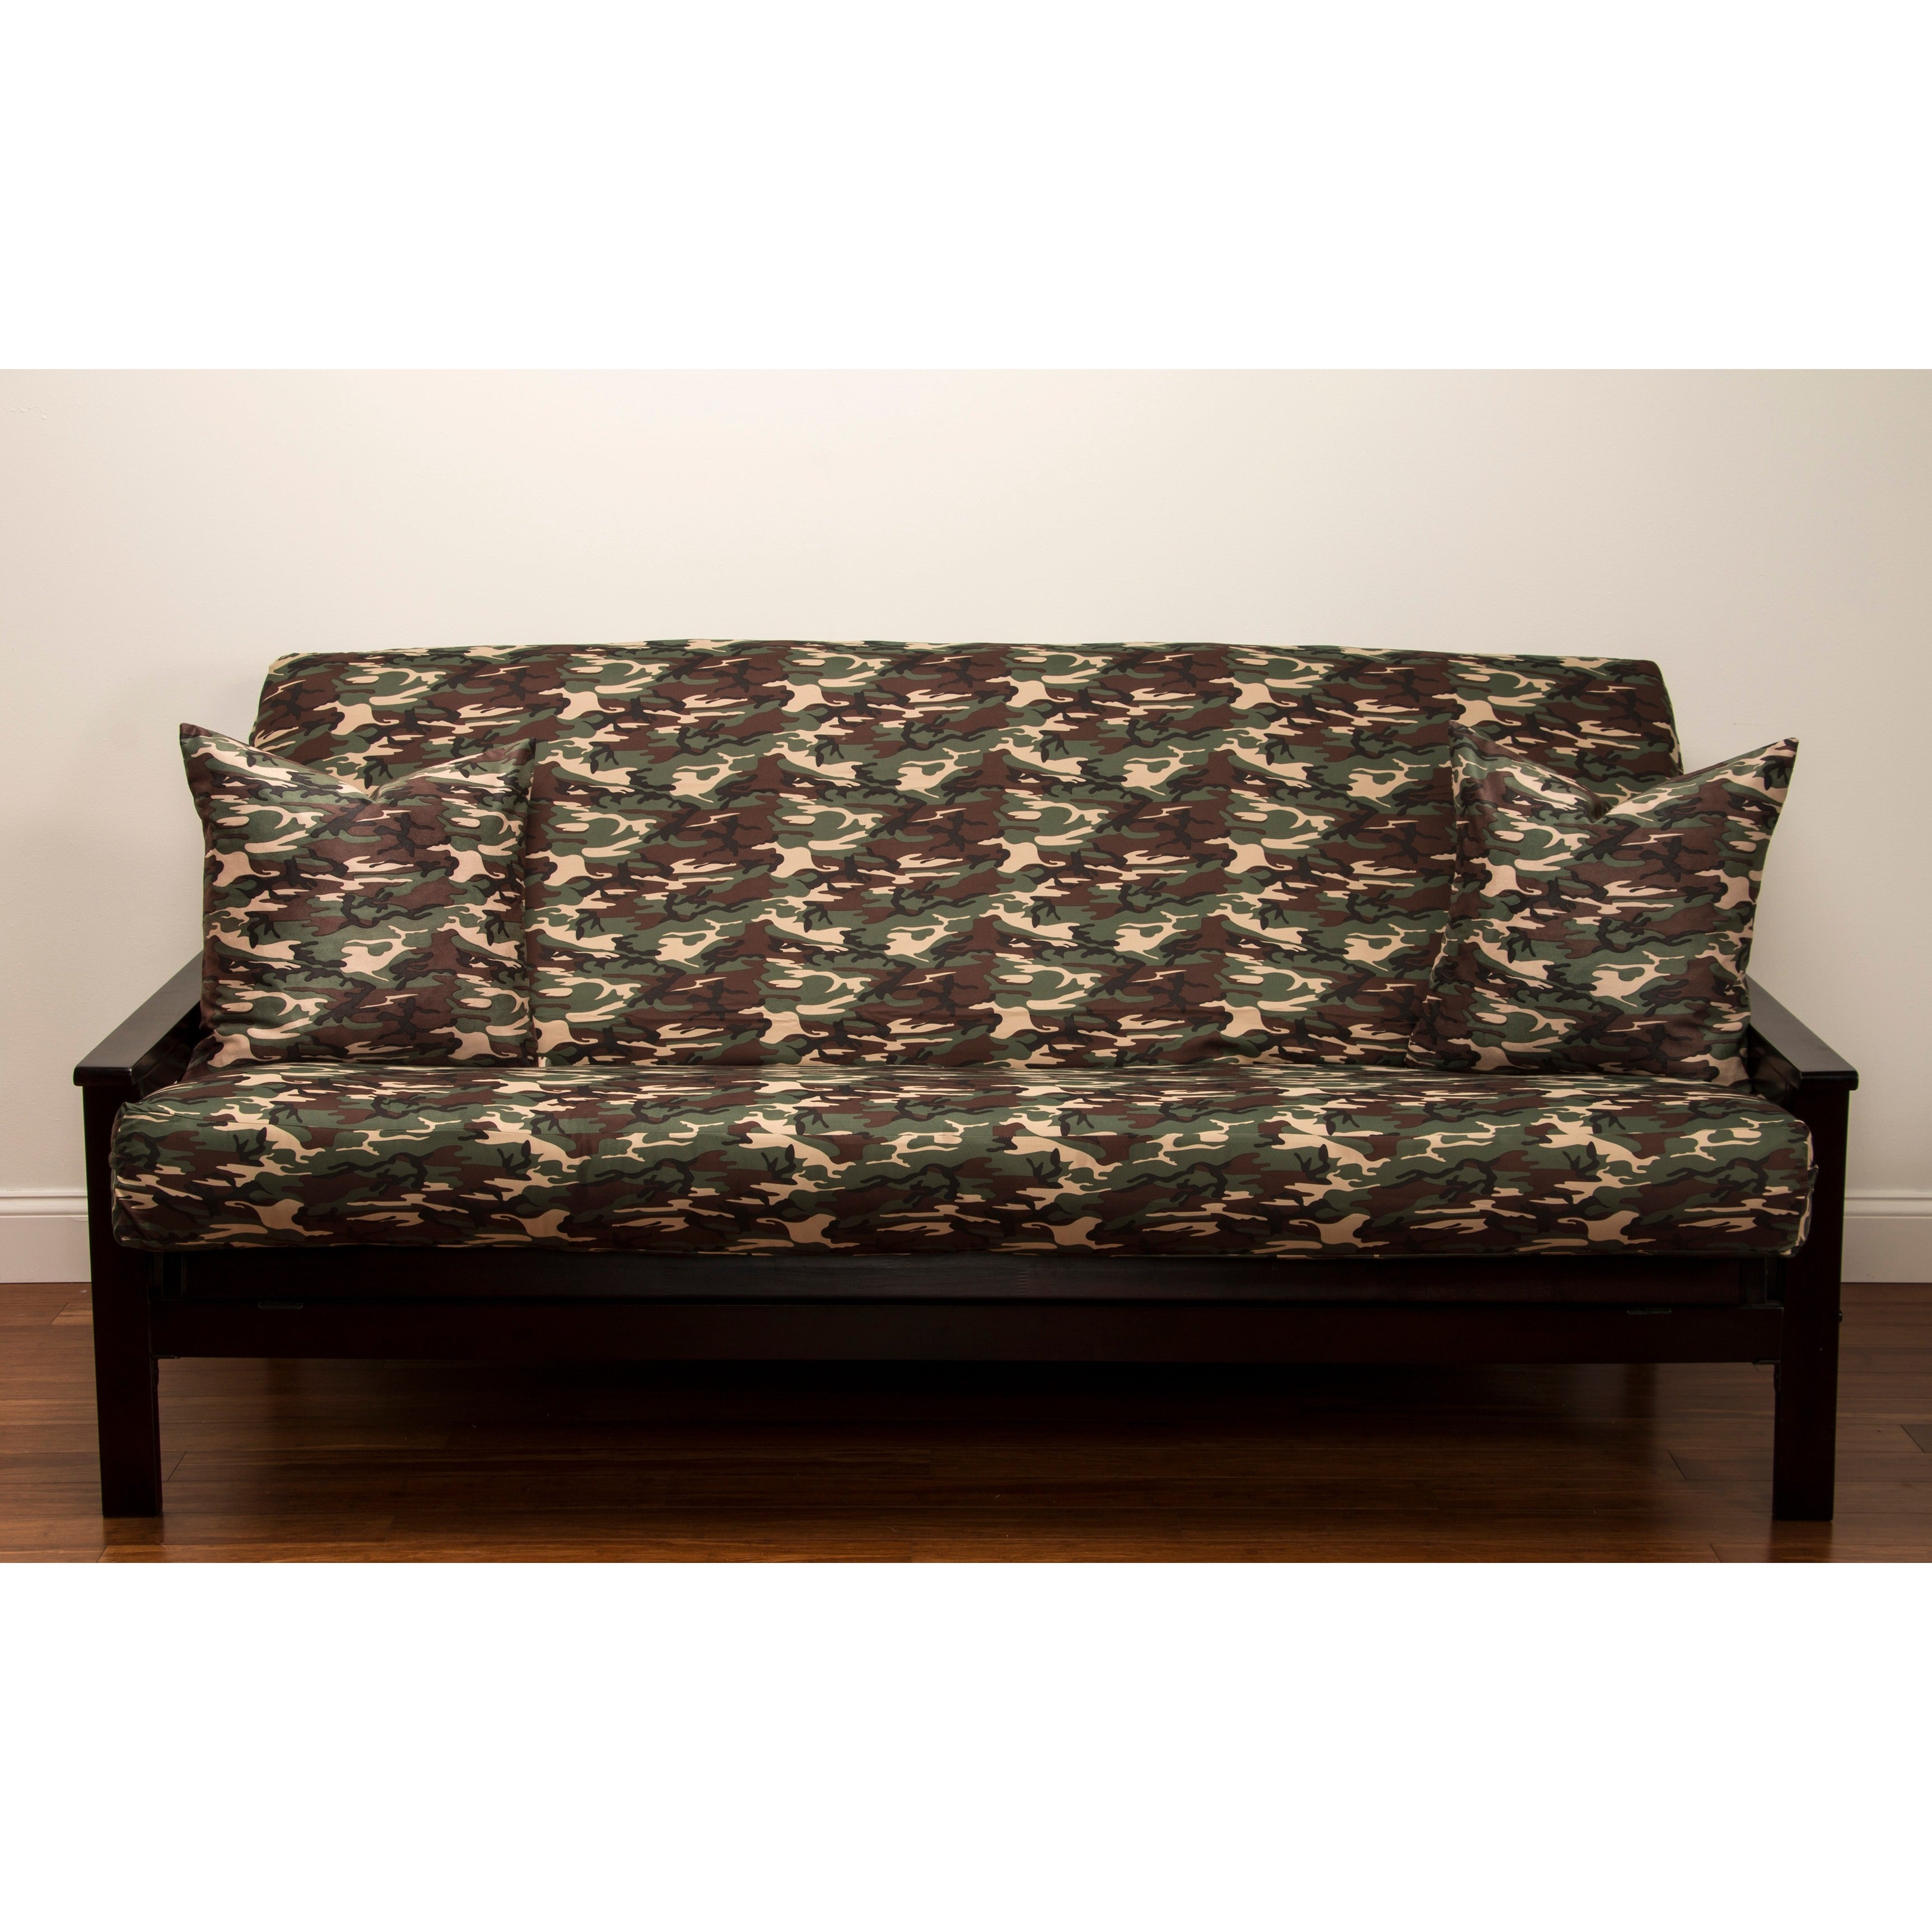 siscovers microfiber camouflage futon cover siscovers microfiber camouflage futon cover 671826764065   ebay  rh   ebay